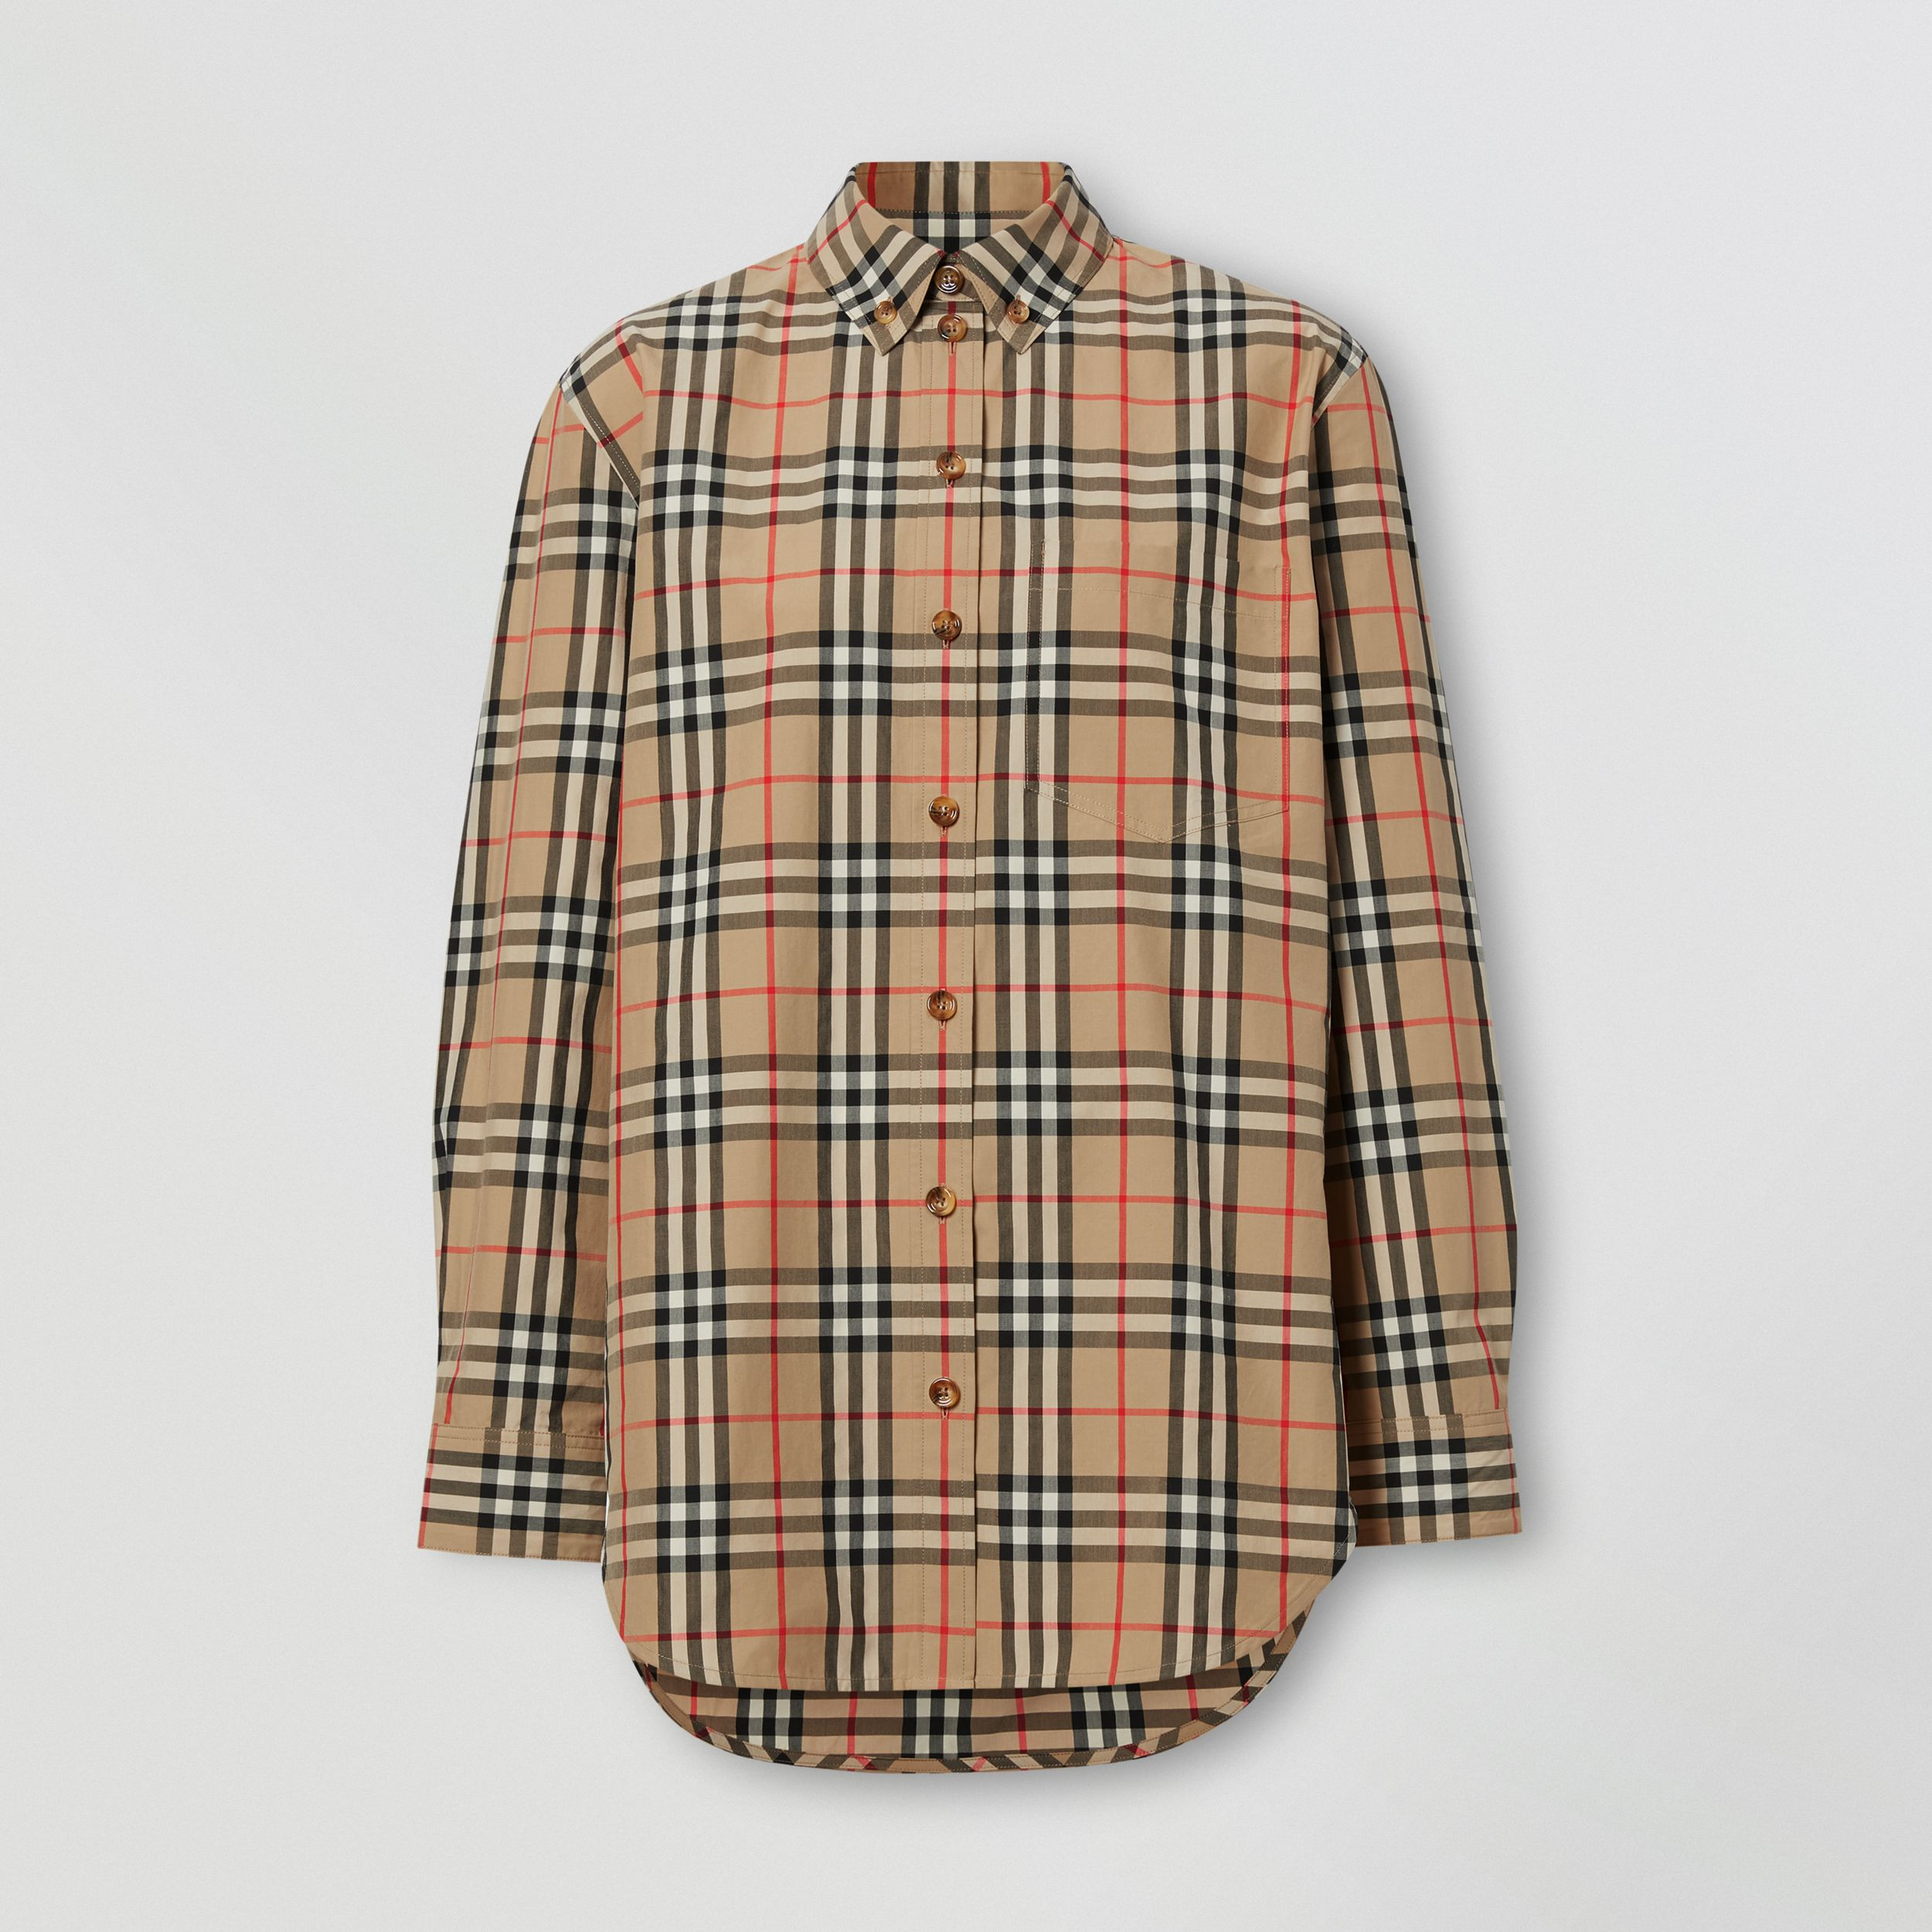 Button-down Collar Vintage Check Cotton Shirt in Archive Beige | Burberry - 4